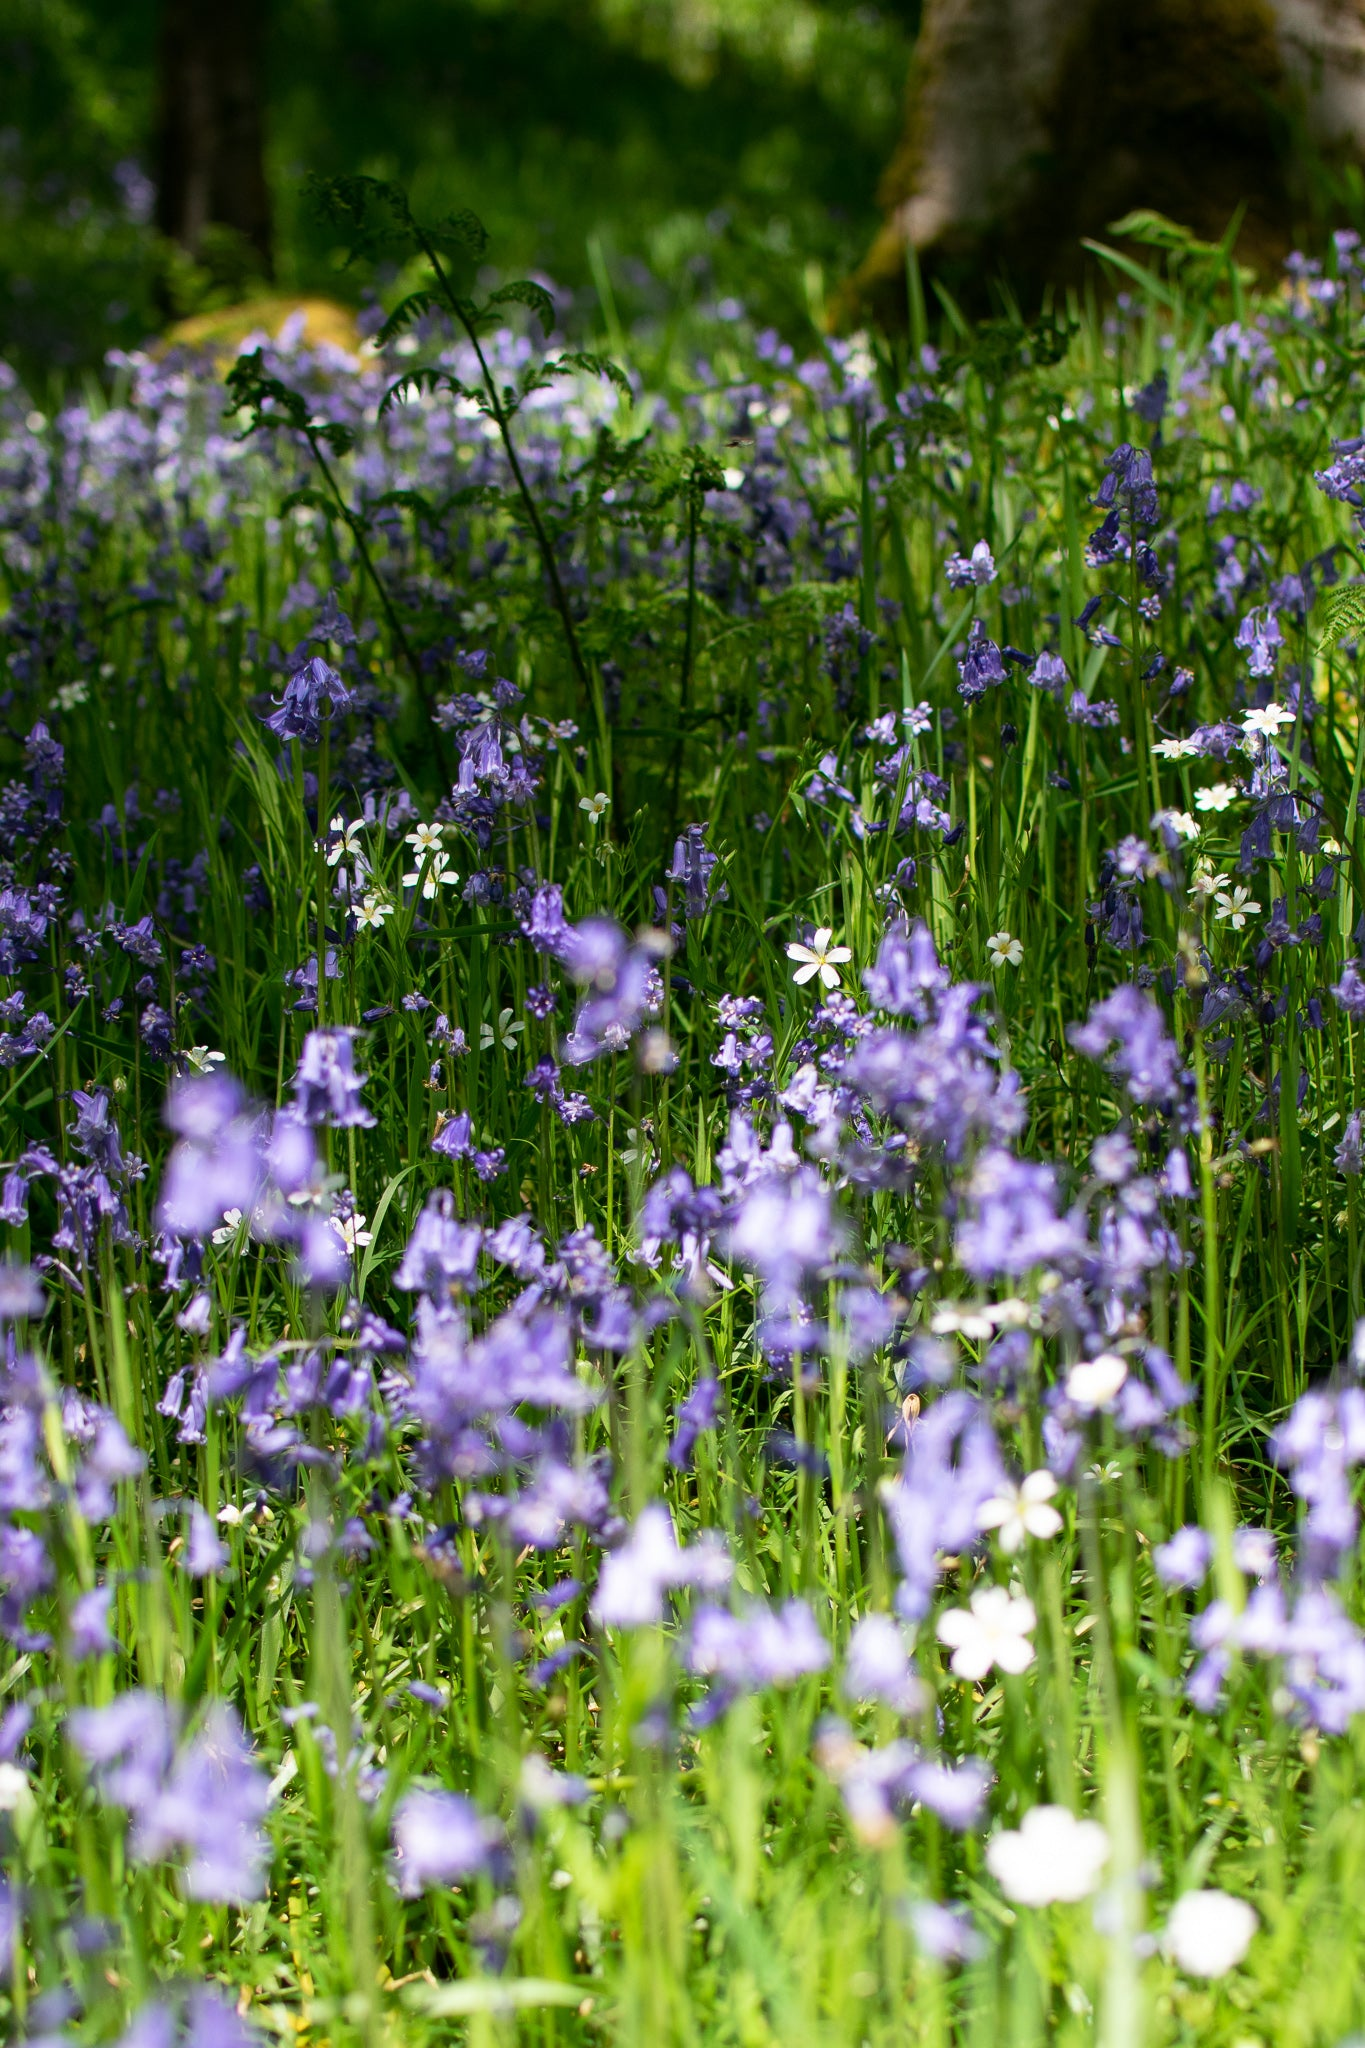 bluebells and greaterstitschworts in the sun